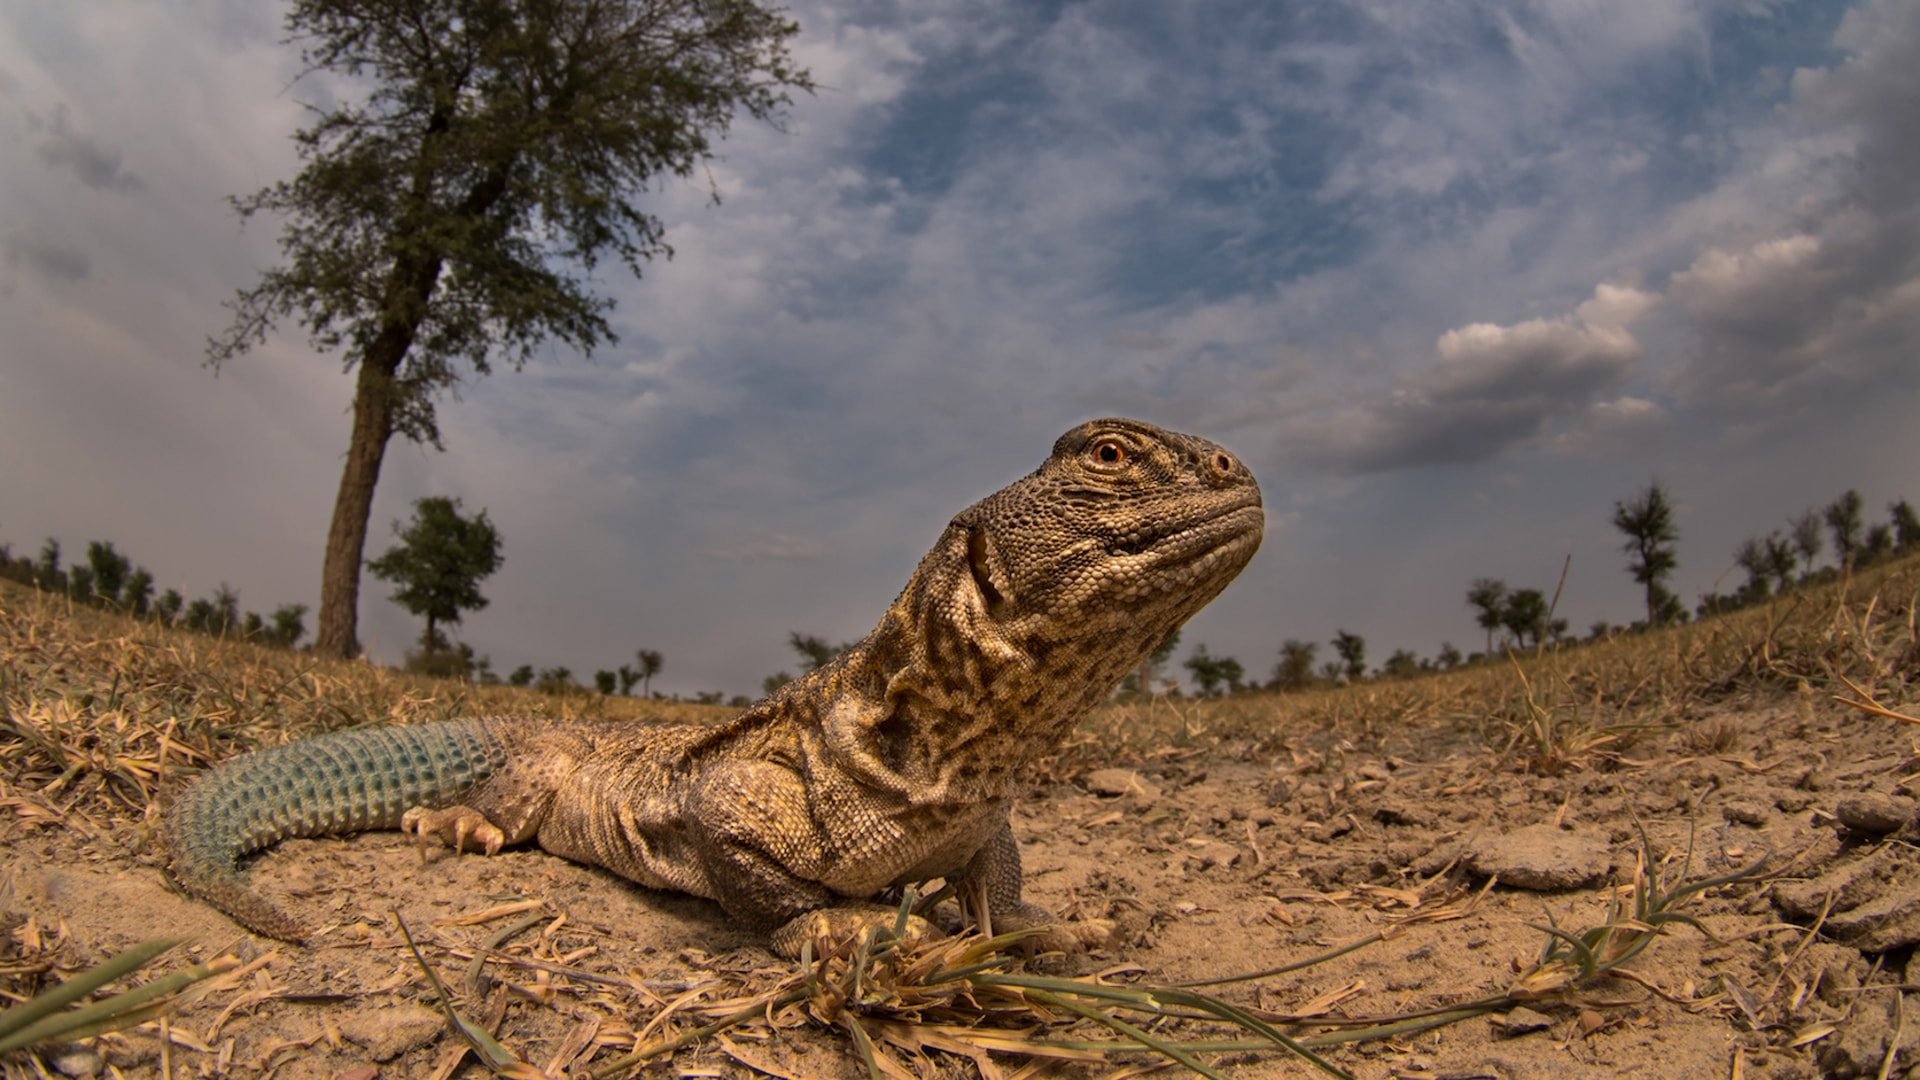 Meet Spiny, the Only Herbivorous Lizard Species in India